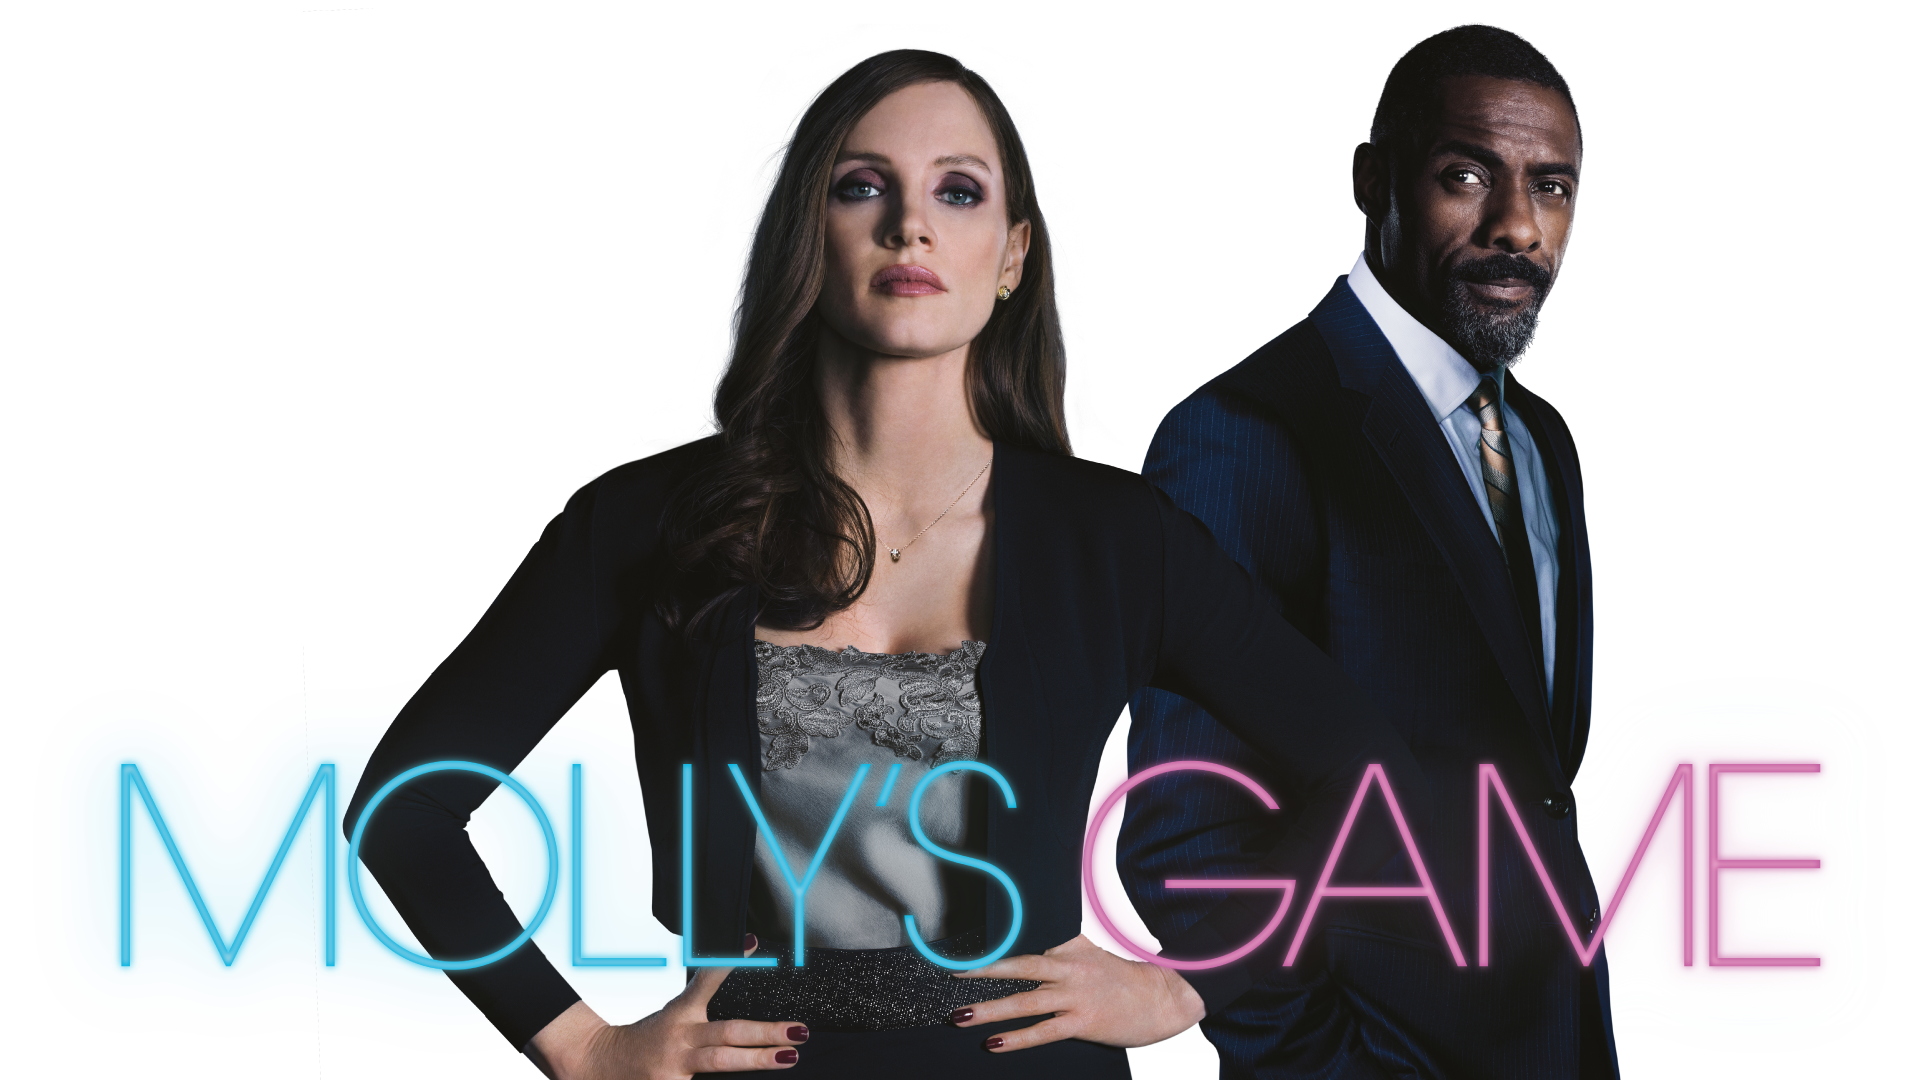 Molly's Game | Firrey | The UK's hottest place for competitions